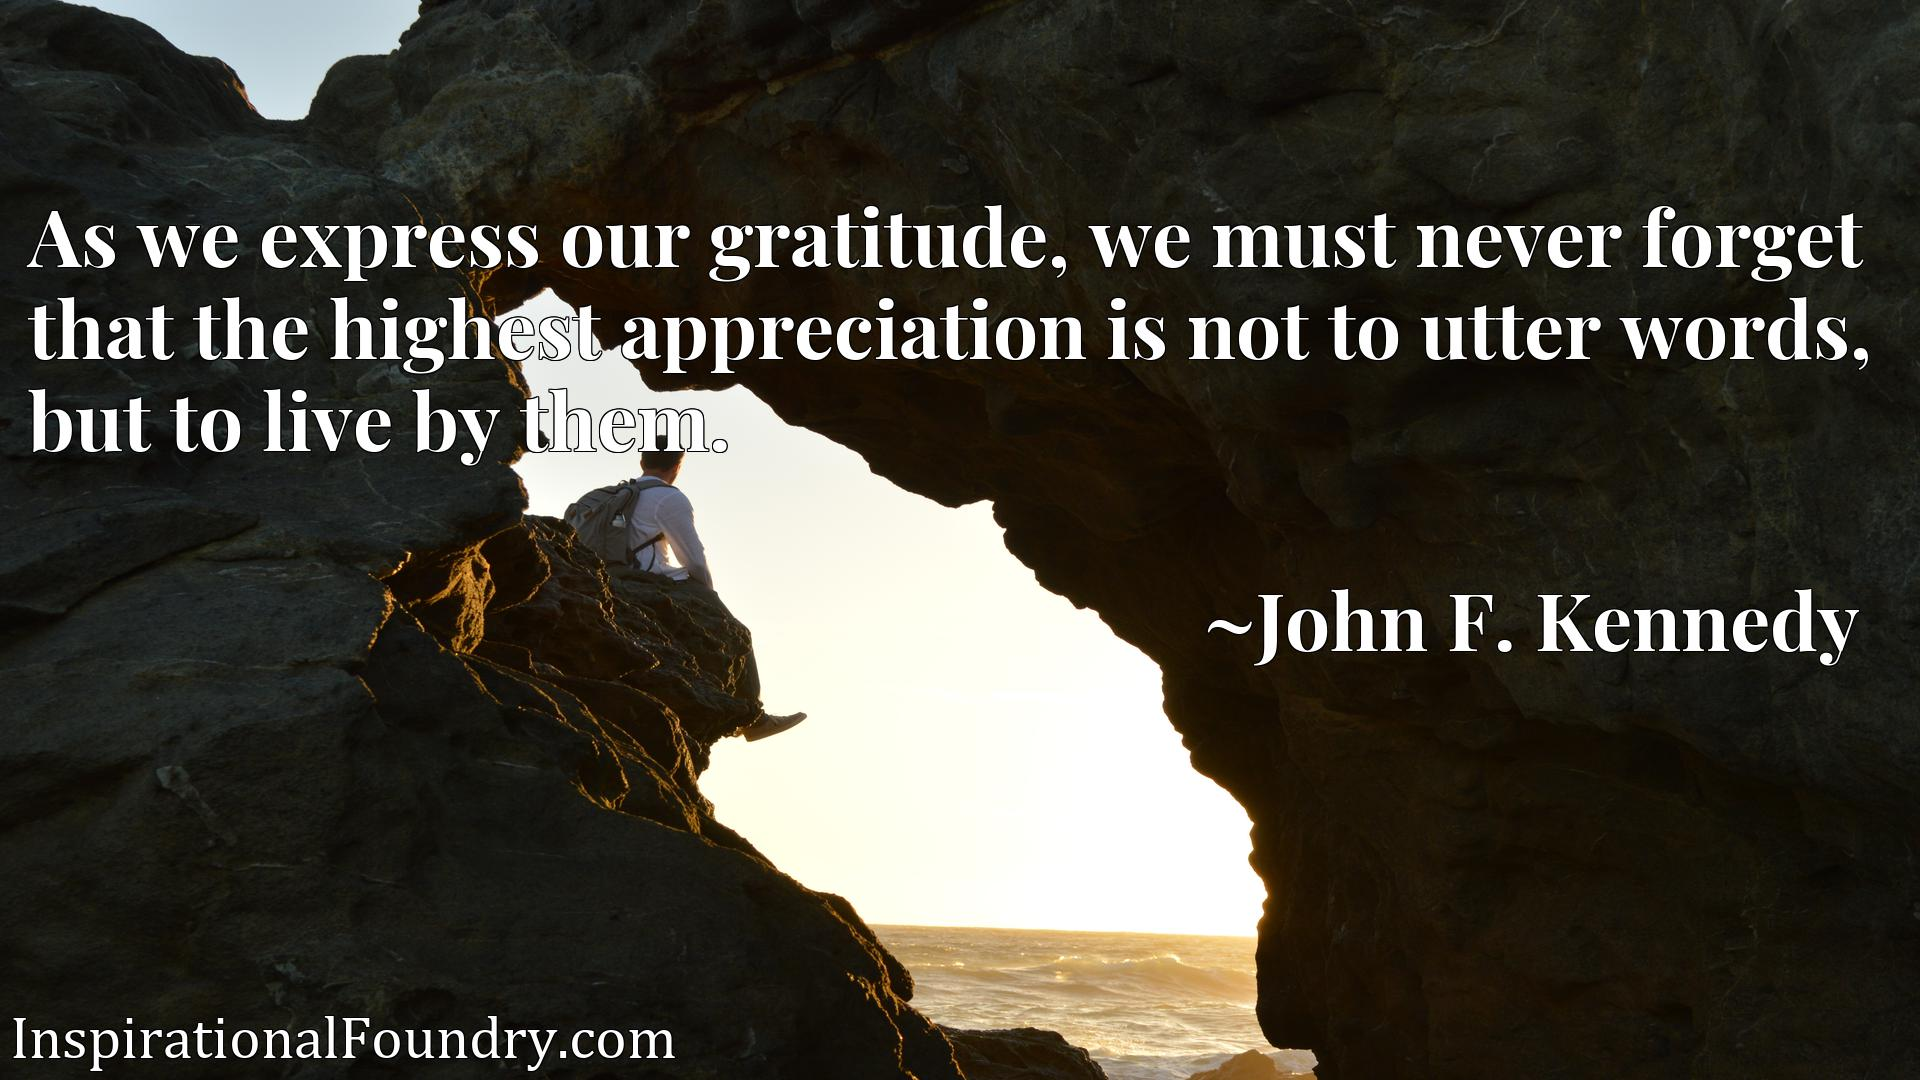 Quote Picture :As we express our gratitude, we must never forget that the highest appreciation is not to utter words, but to live by them.